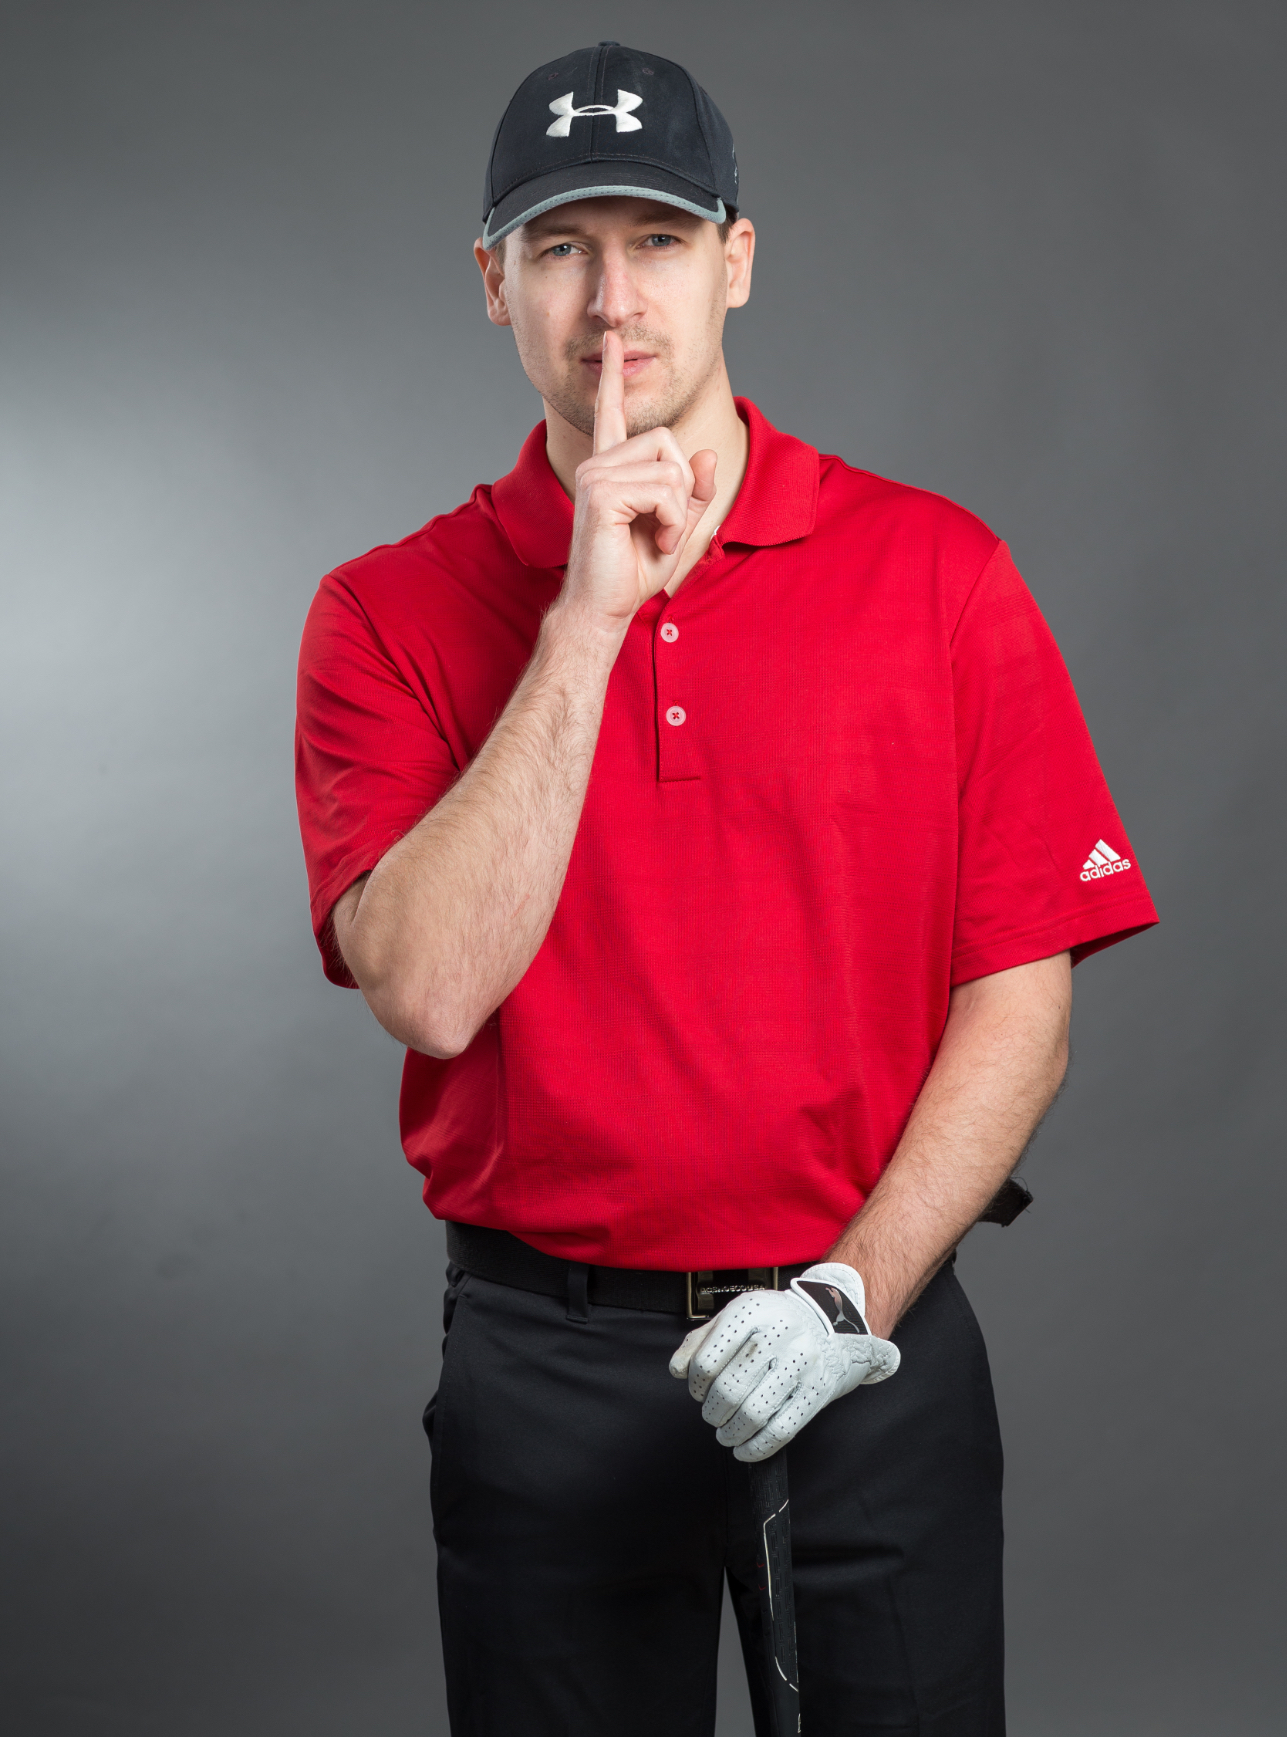 Greg - Founder of Good at Golf